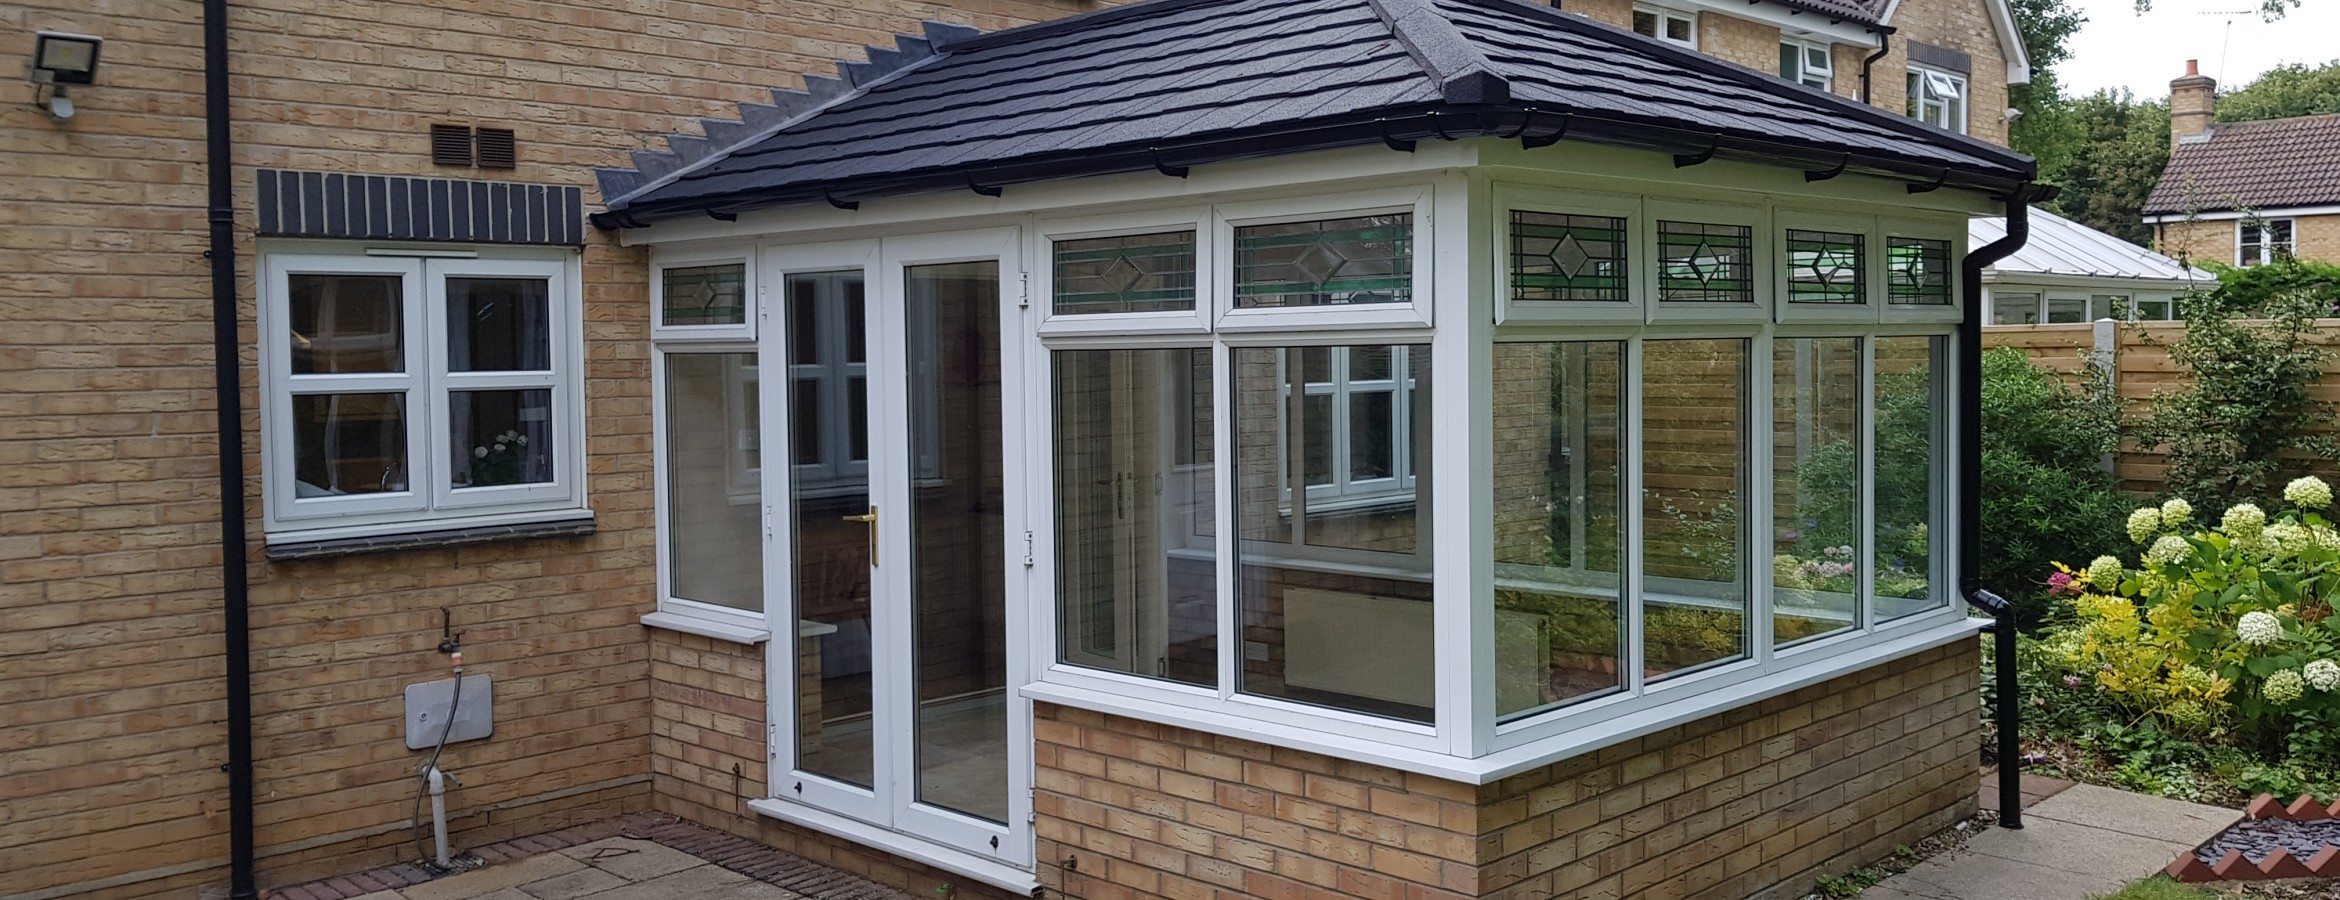 A new conservatory with a warmroof